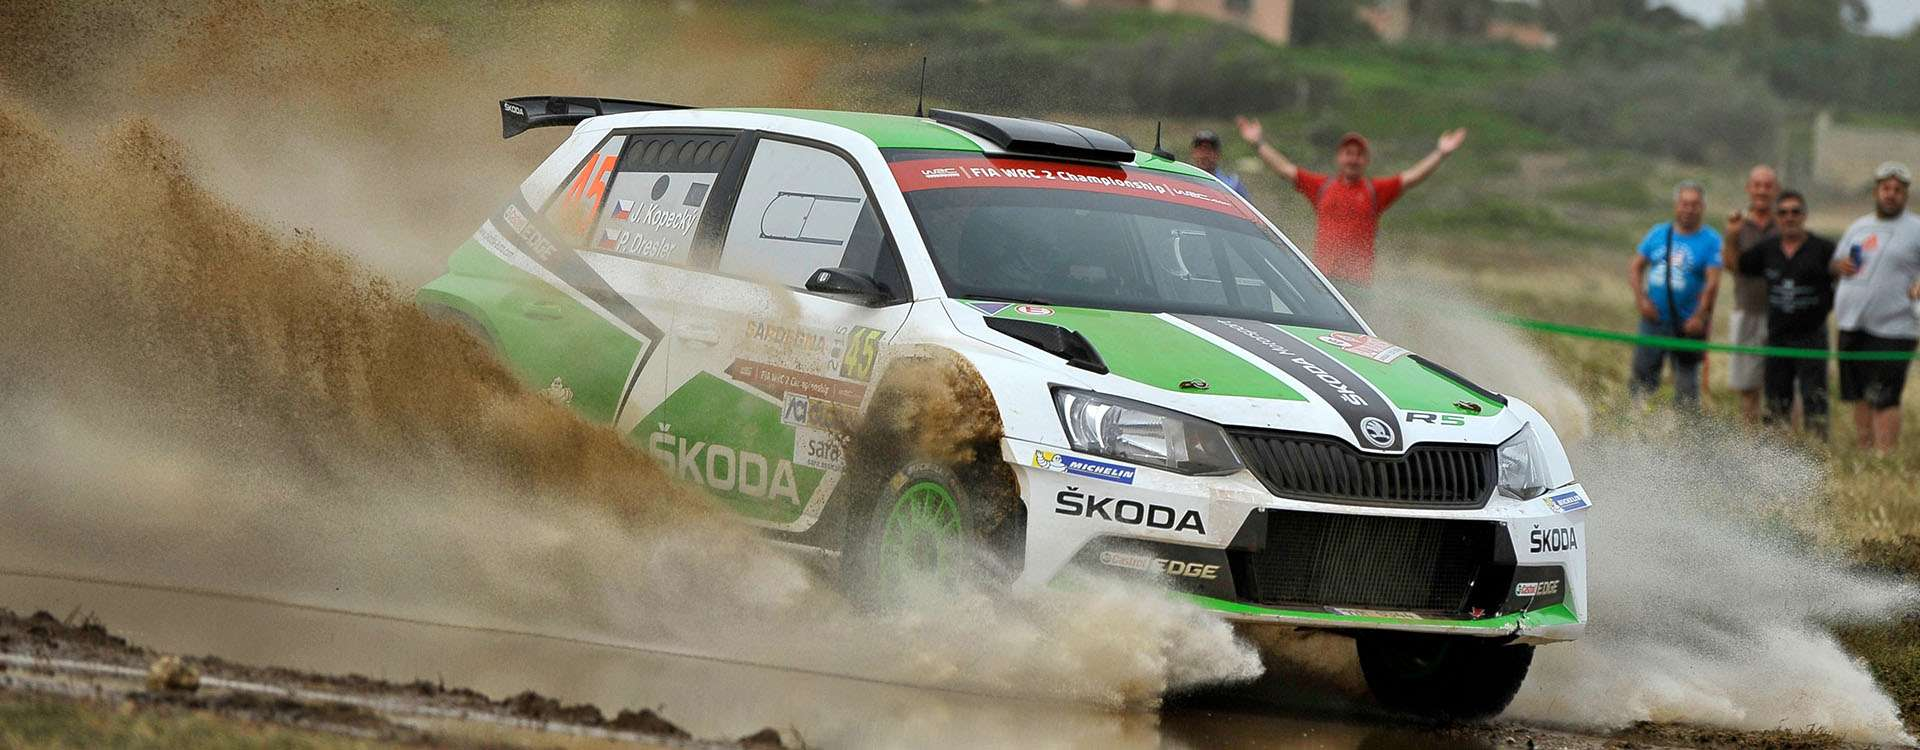 Rally Sardegna: Third place for Jan Kopecký in the ŠKODA Fabia R5